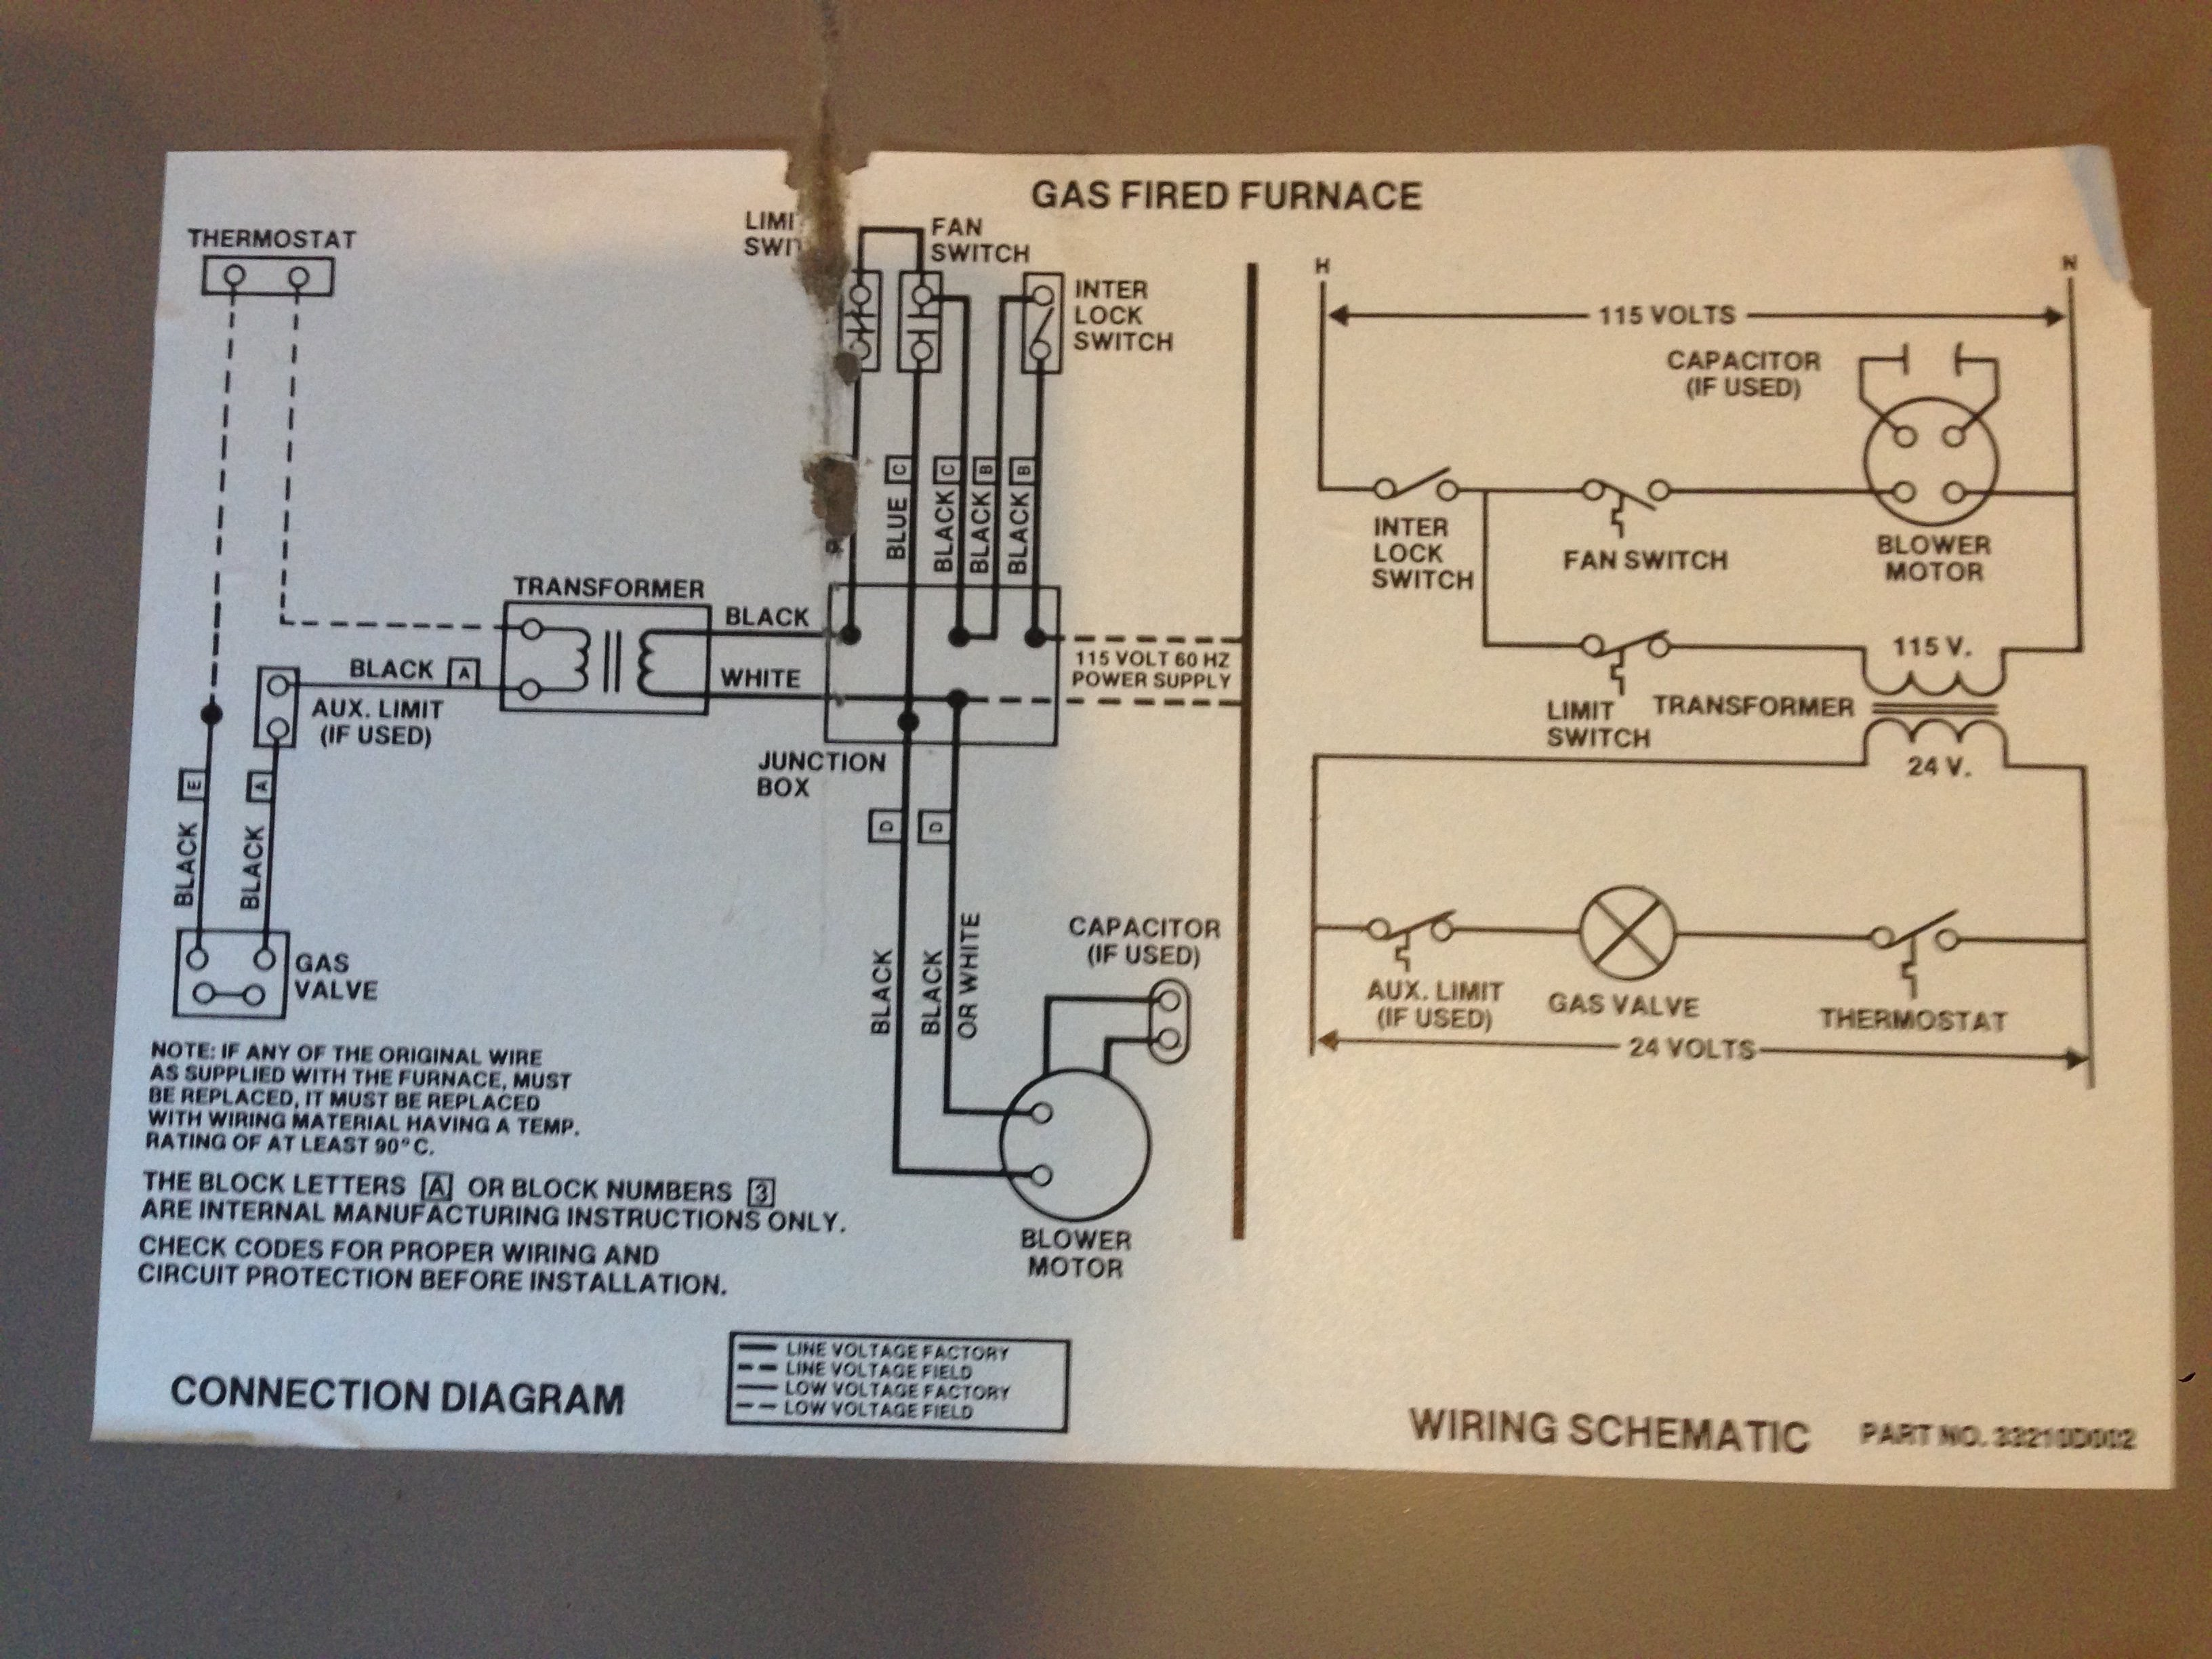 i'm looking for the wiring instructions for a honeywell ... wiring diagram older furnace blower relay